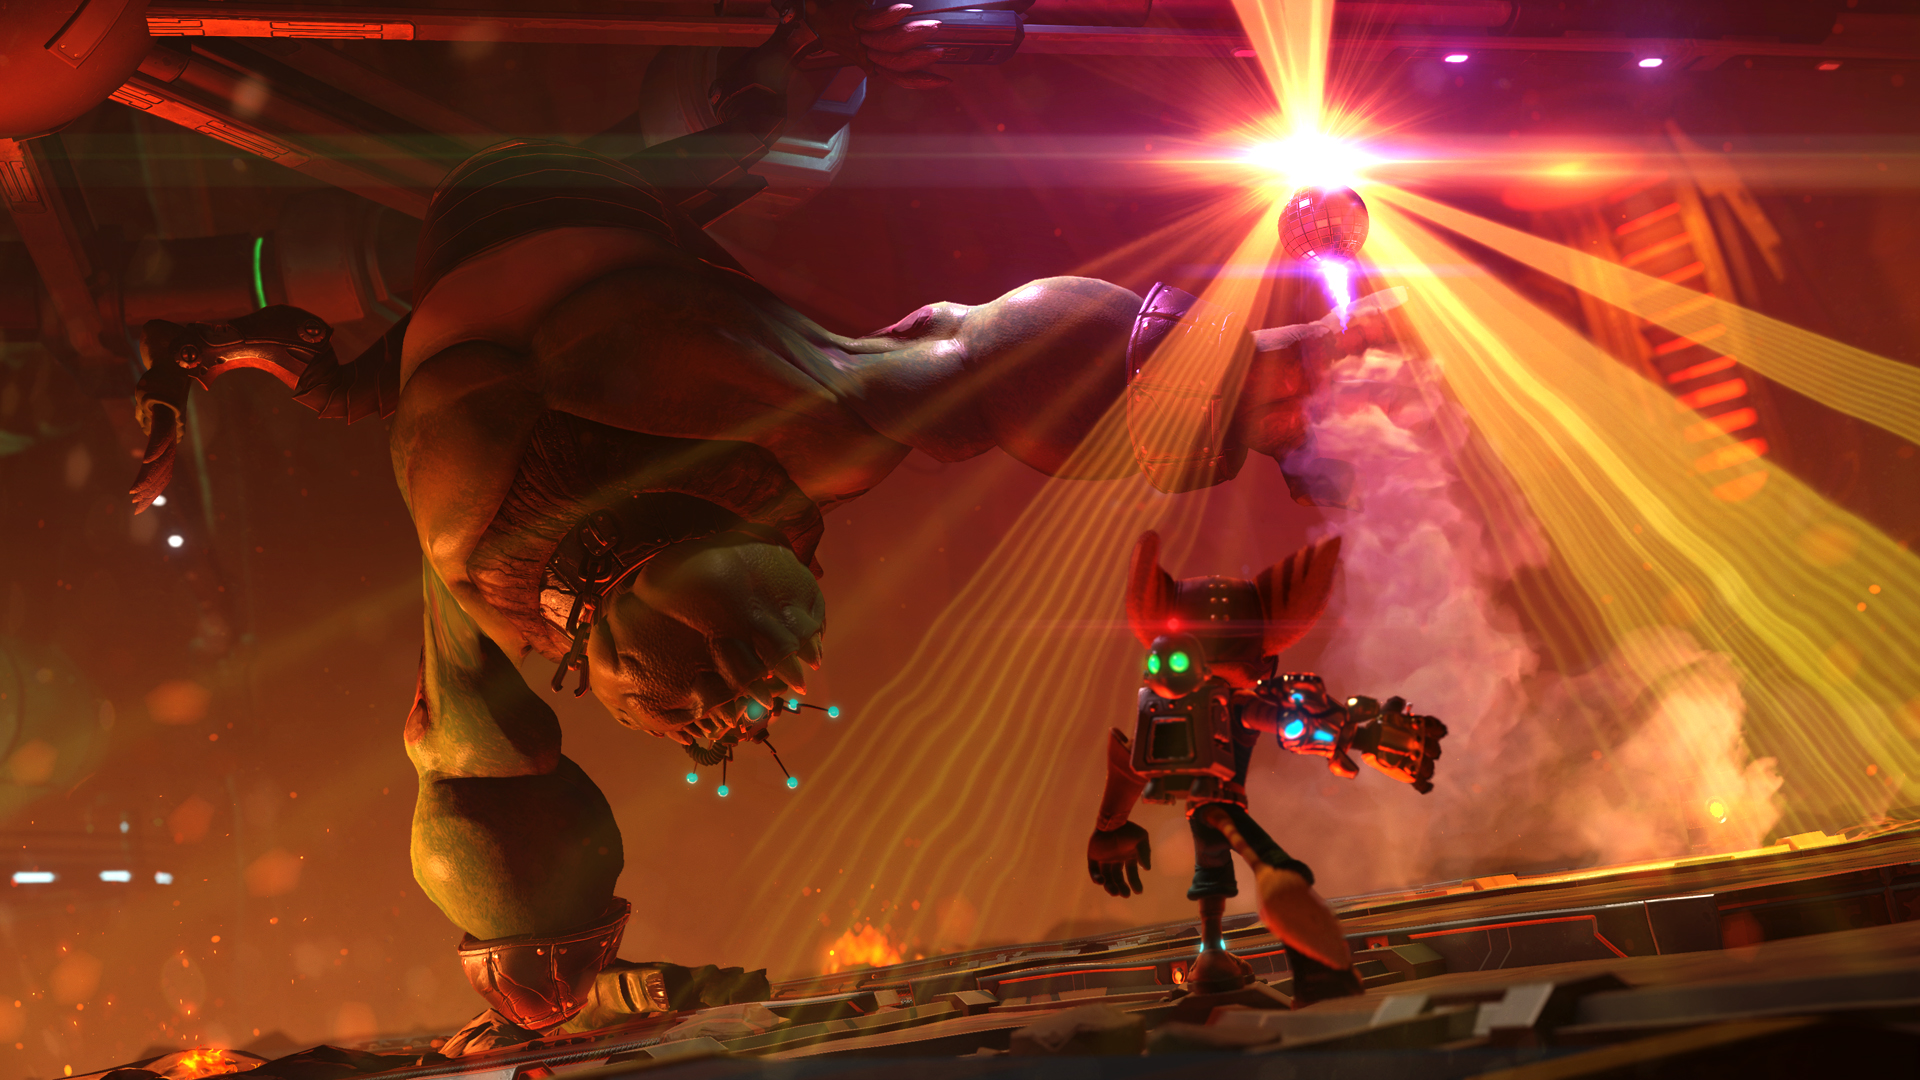 Ratchet & Clank Is A Love Letter To A Treasured Franchise 2897603 3 disco